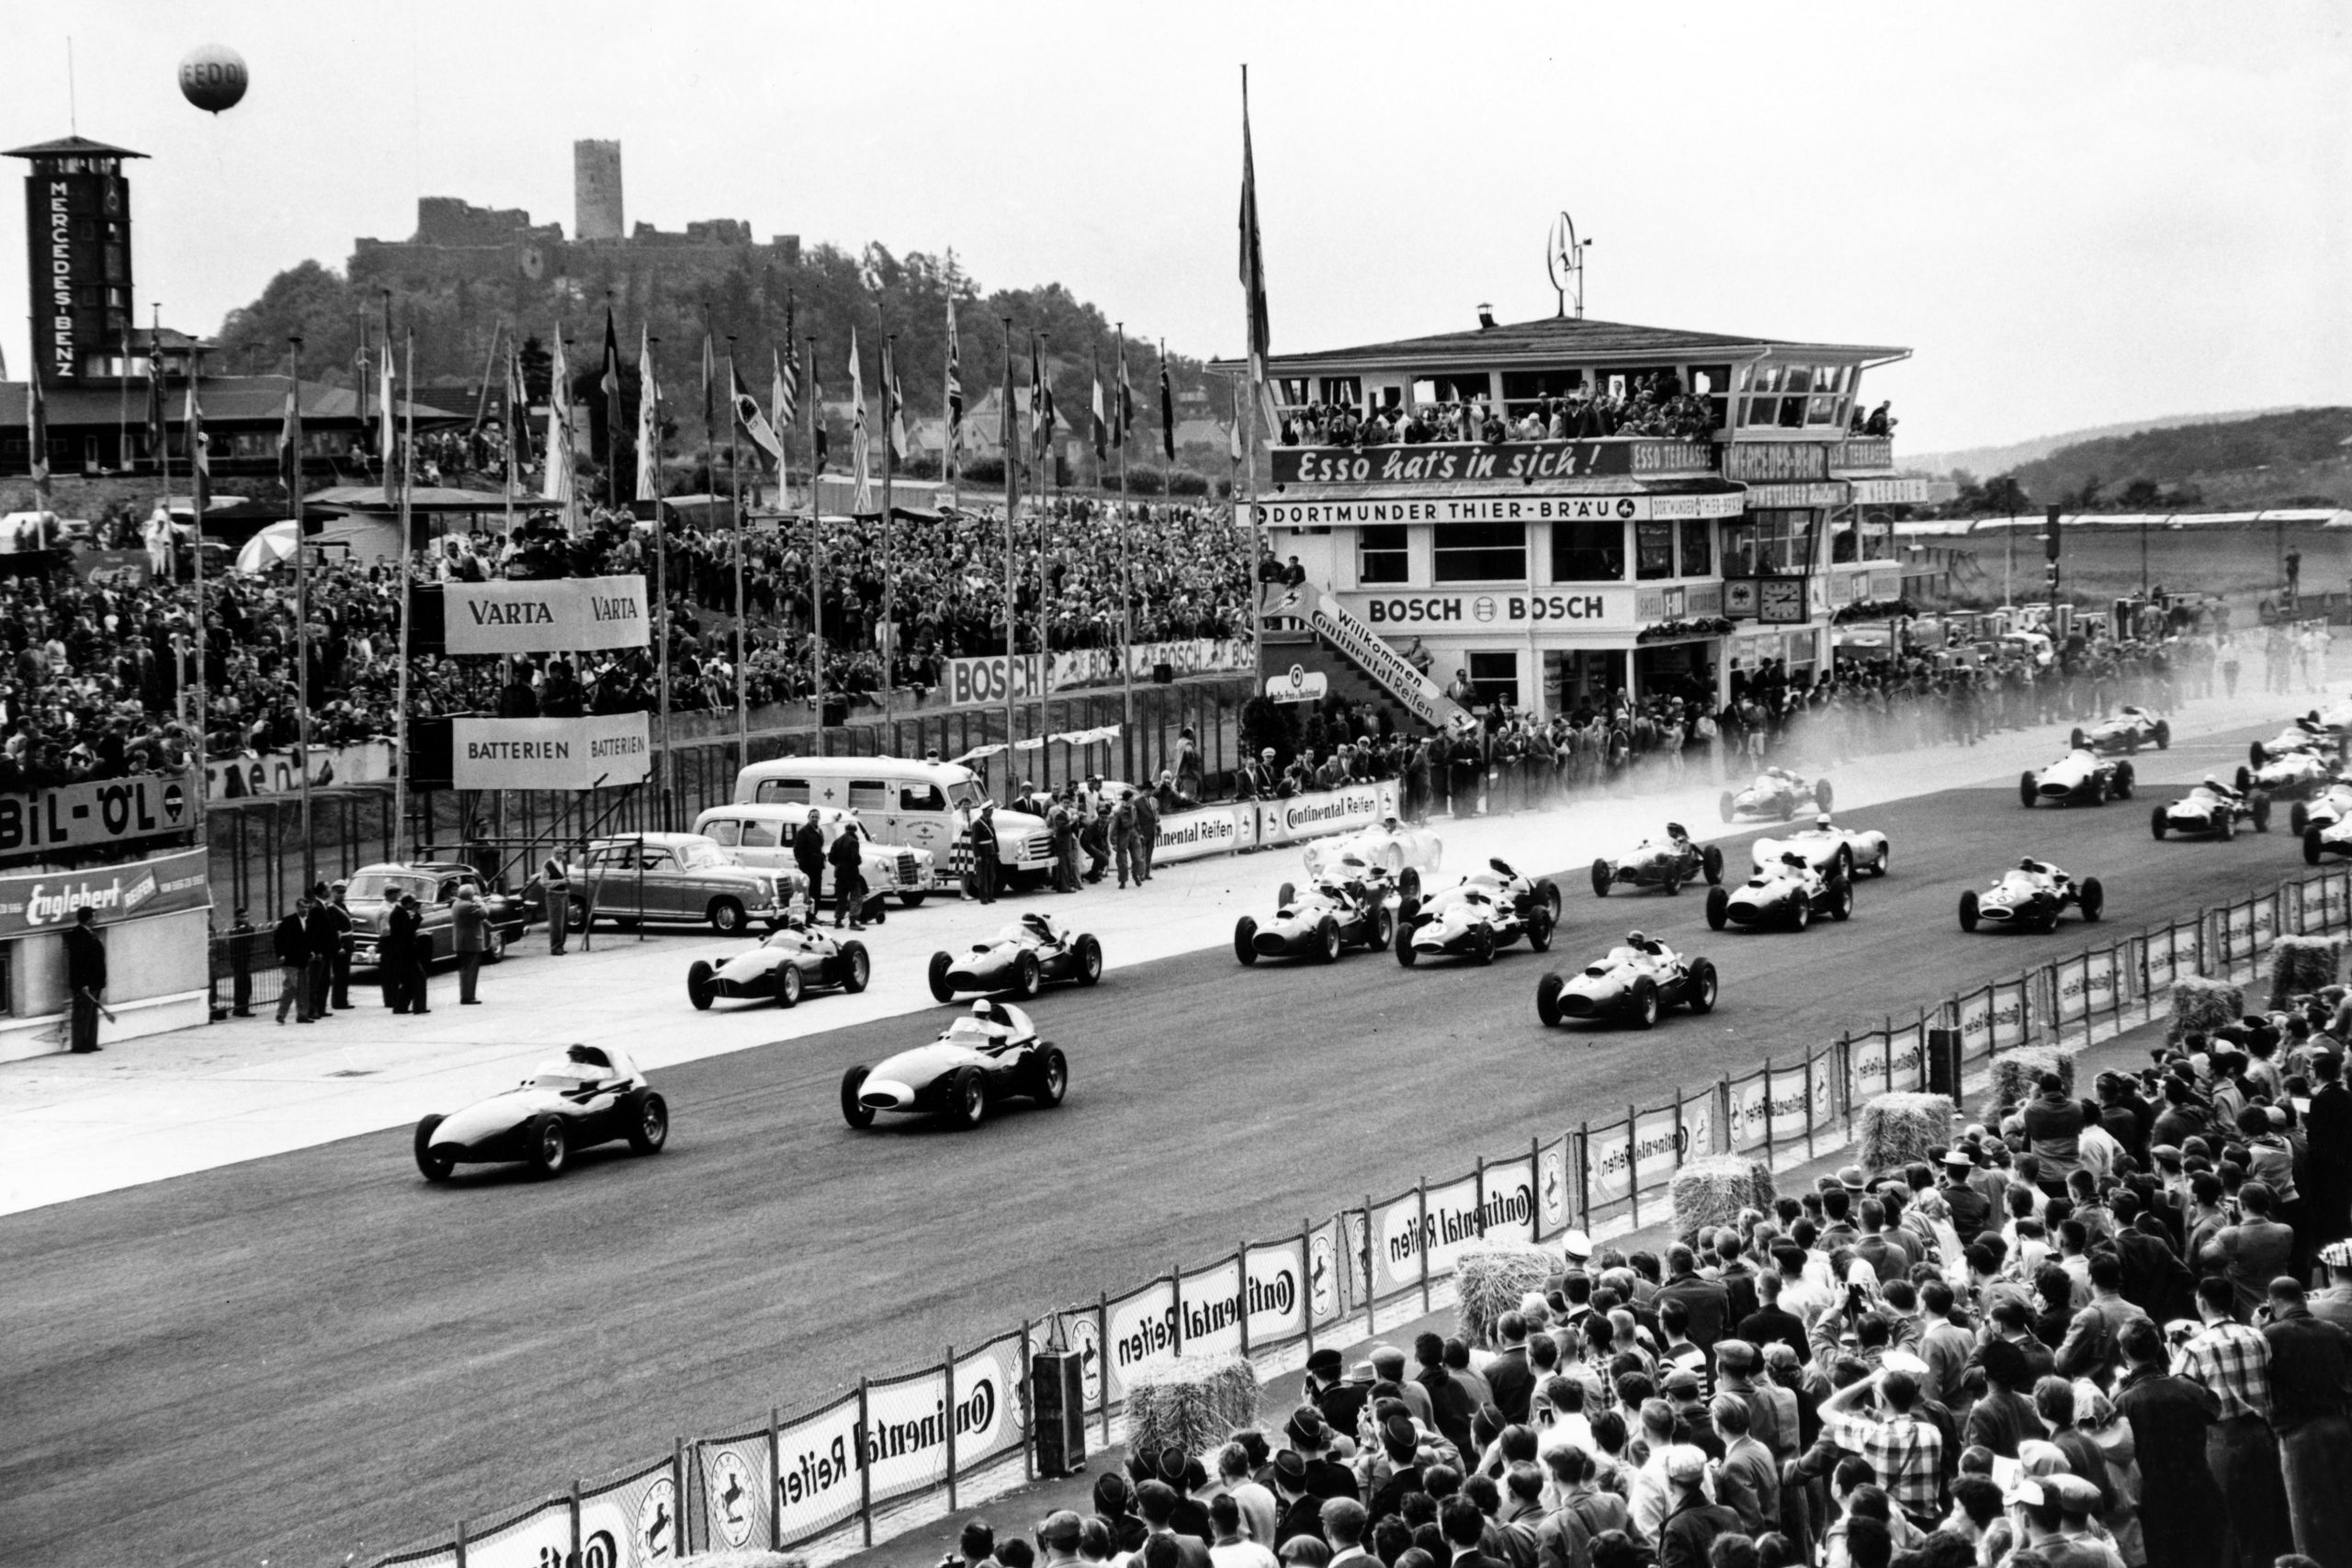 Cars on the grid at the start of the race.